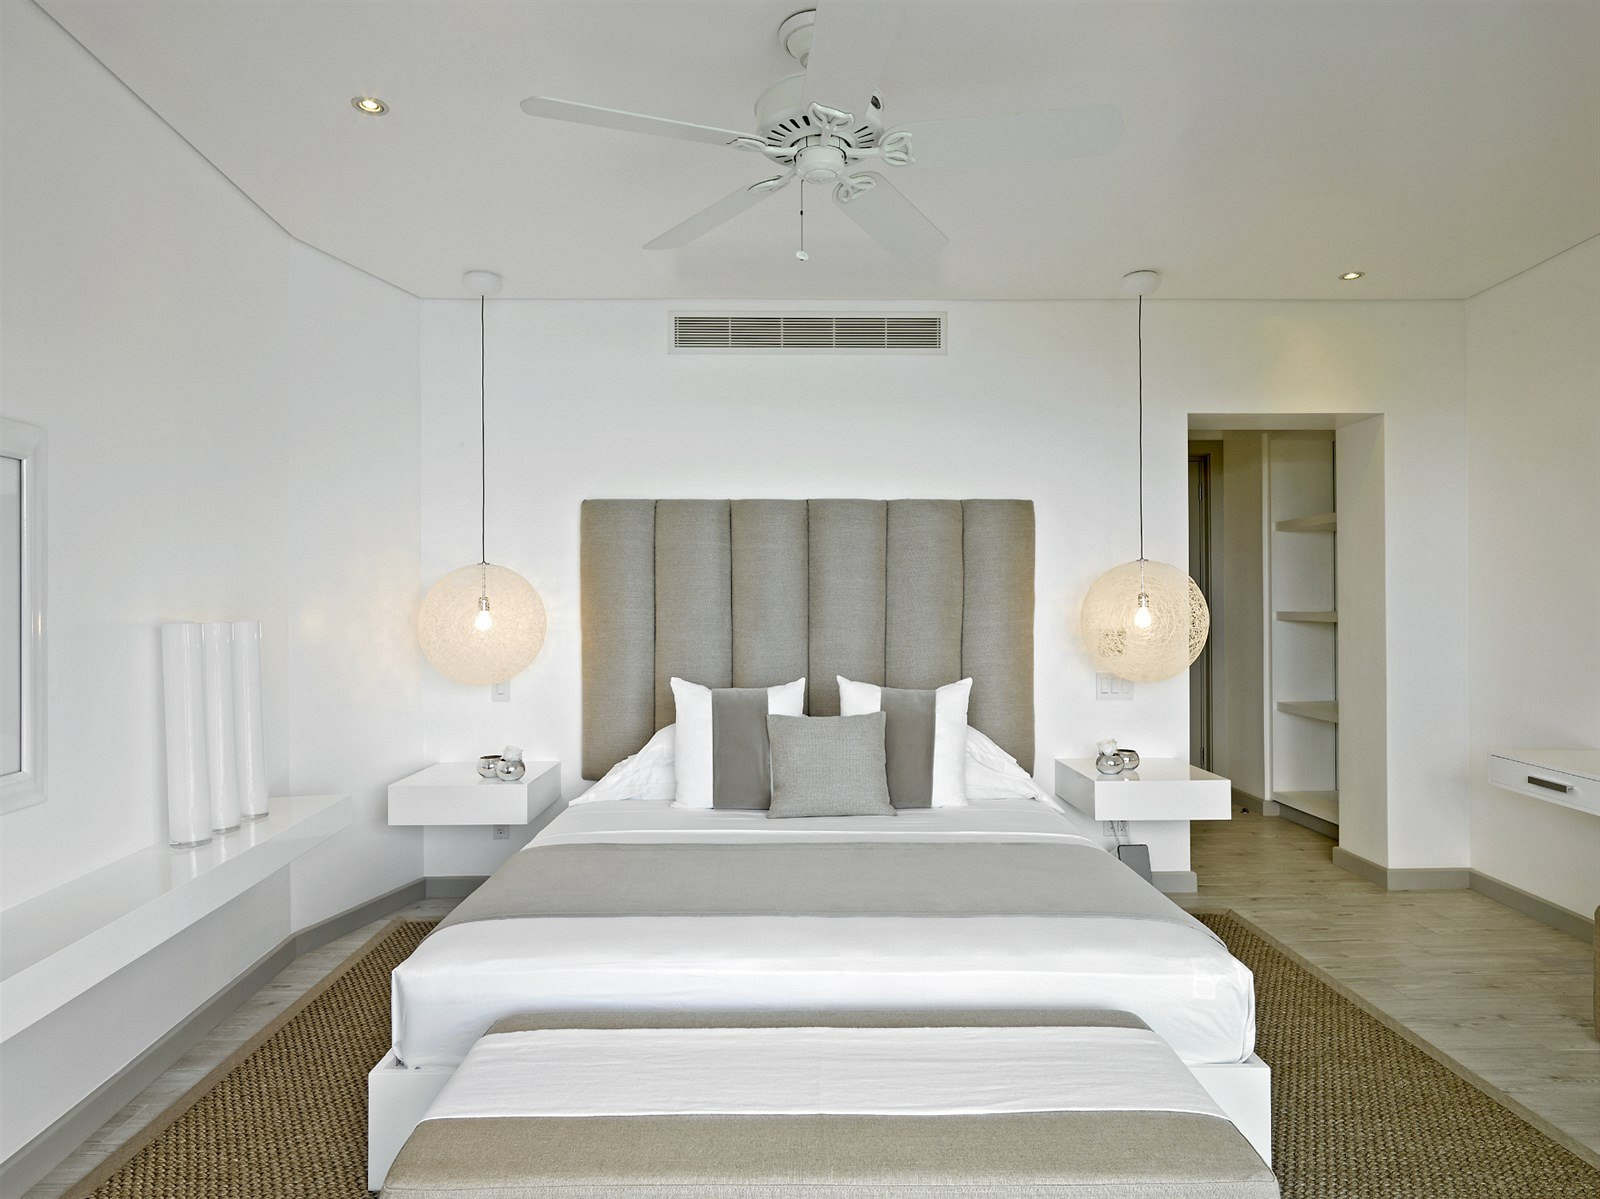 Master Bedroom Master Bedroom Inspiring Master Bedroom Ideas By Kelly Hoppen WEB53d117 Barbados 18